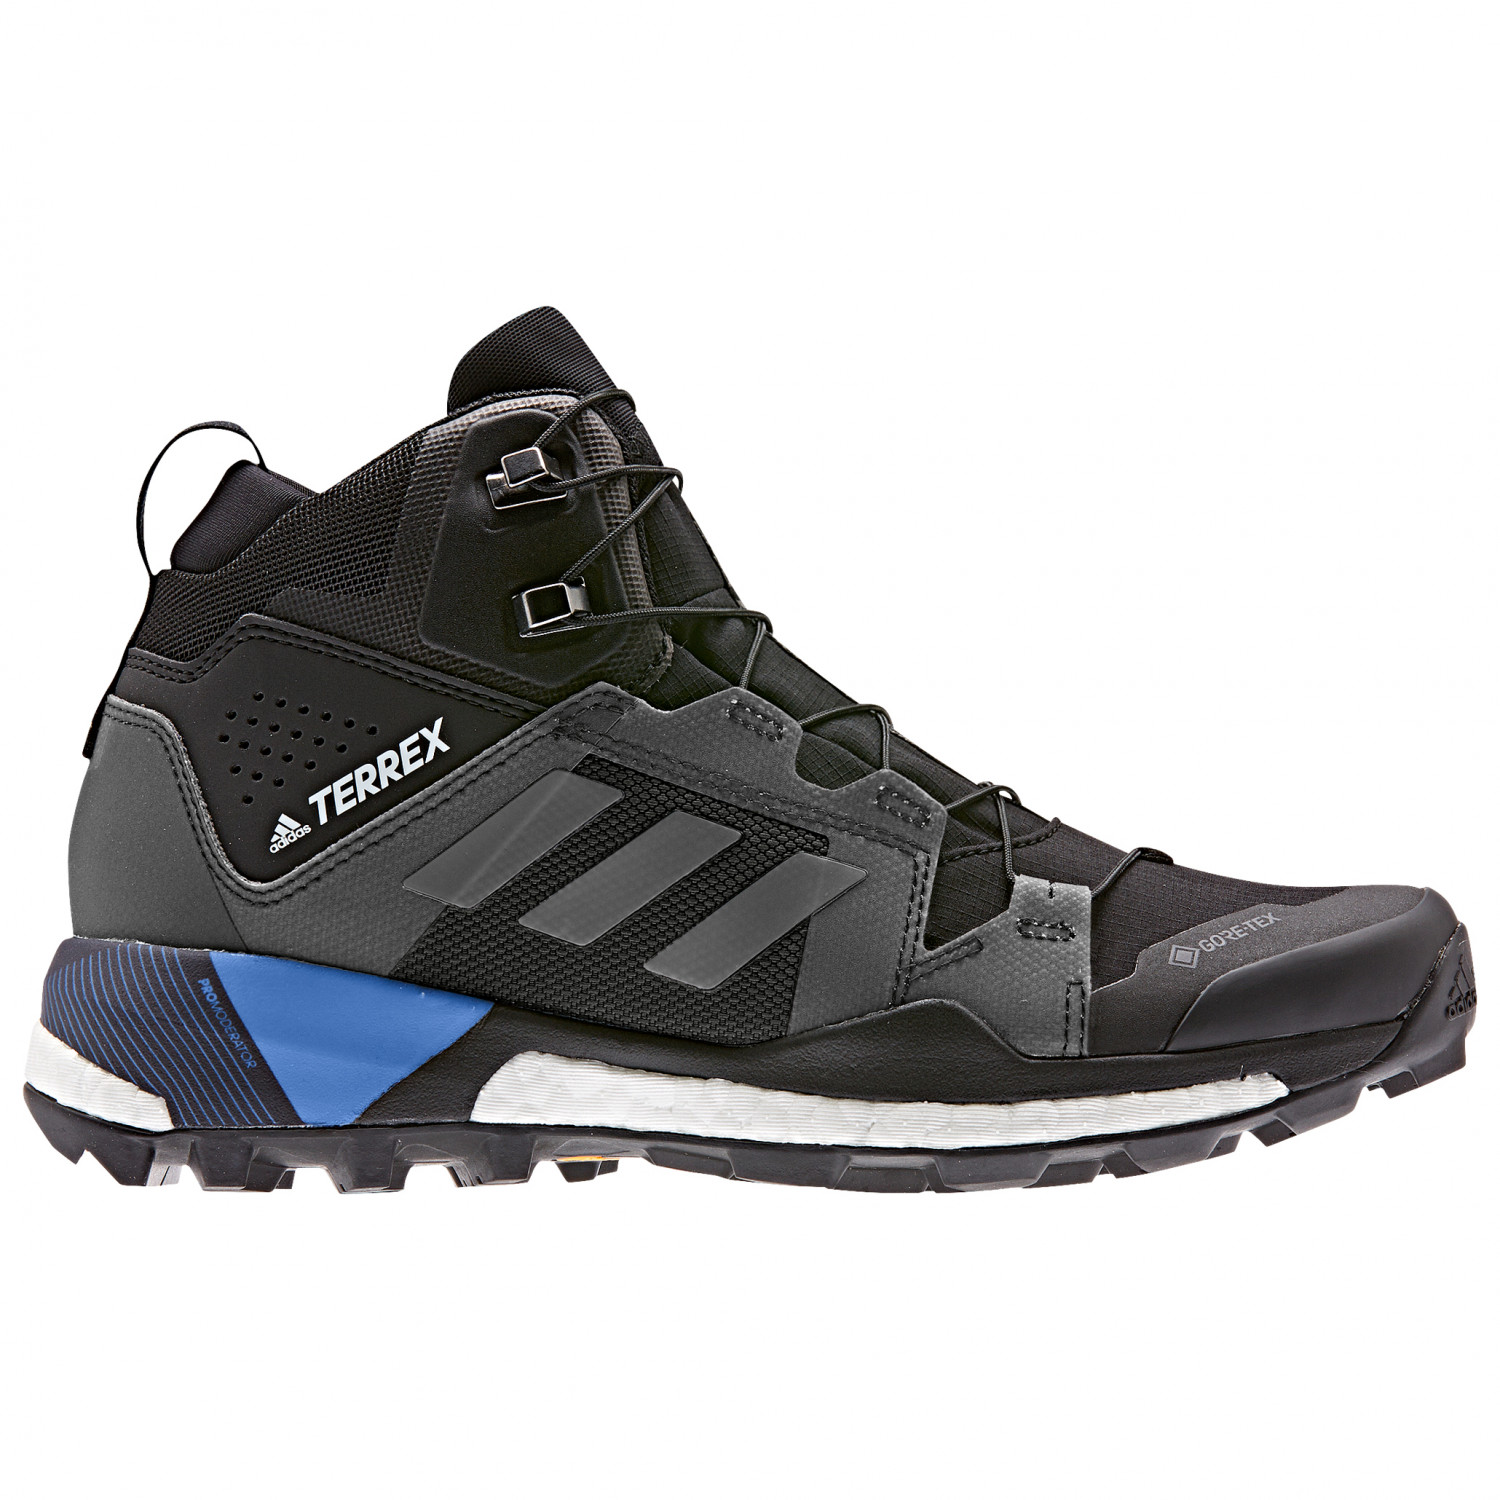 adidas - Women's Terrex Skychaser XT Mid GTX - Approachschuhe - Core Black  / Grey Four / Real Blue | 3,5 (UK)